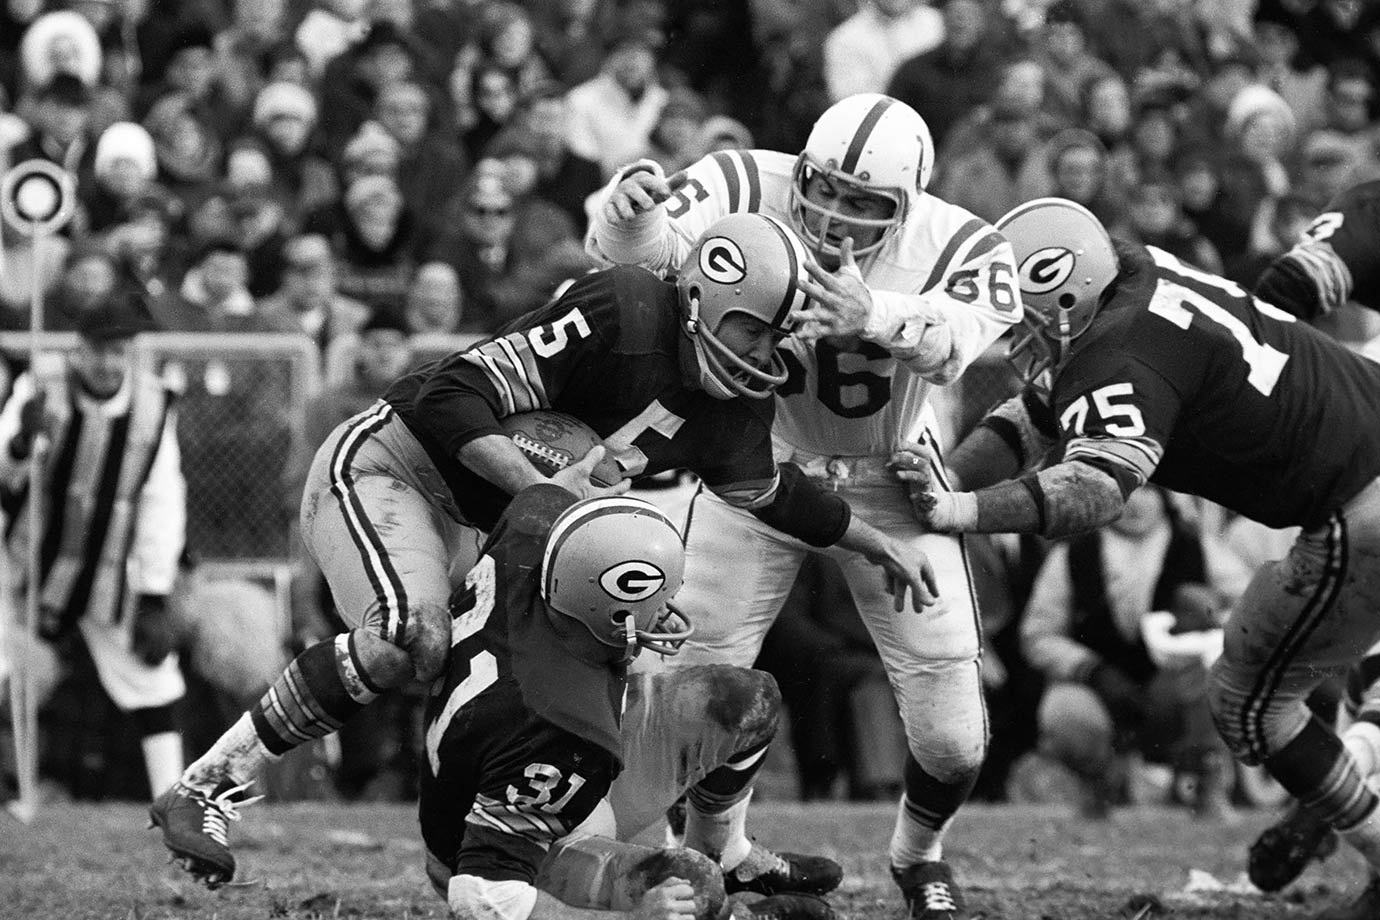 Dec. 26, 1965 (Western Conference playoff) — Green Bay Packers vs. Baltimore Colts